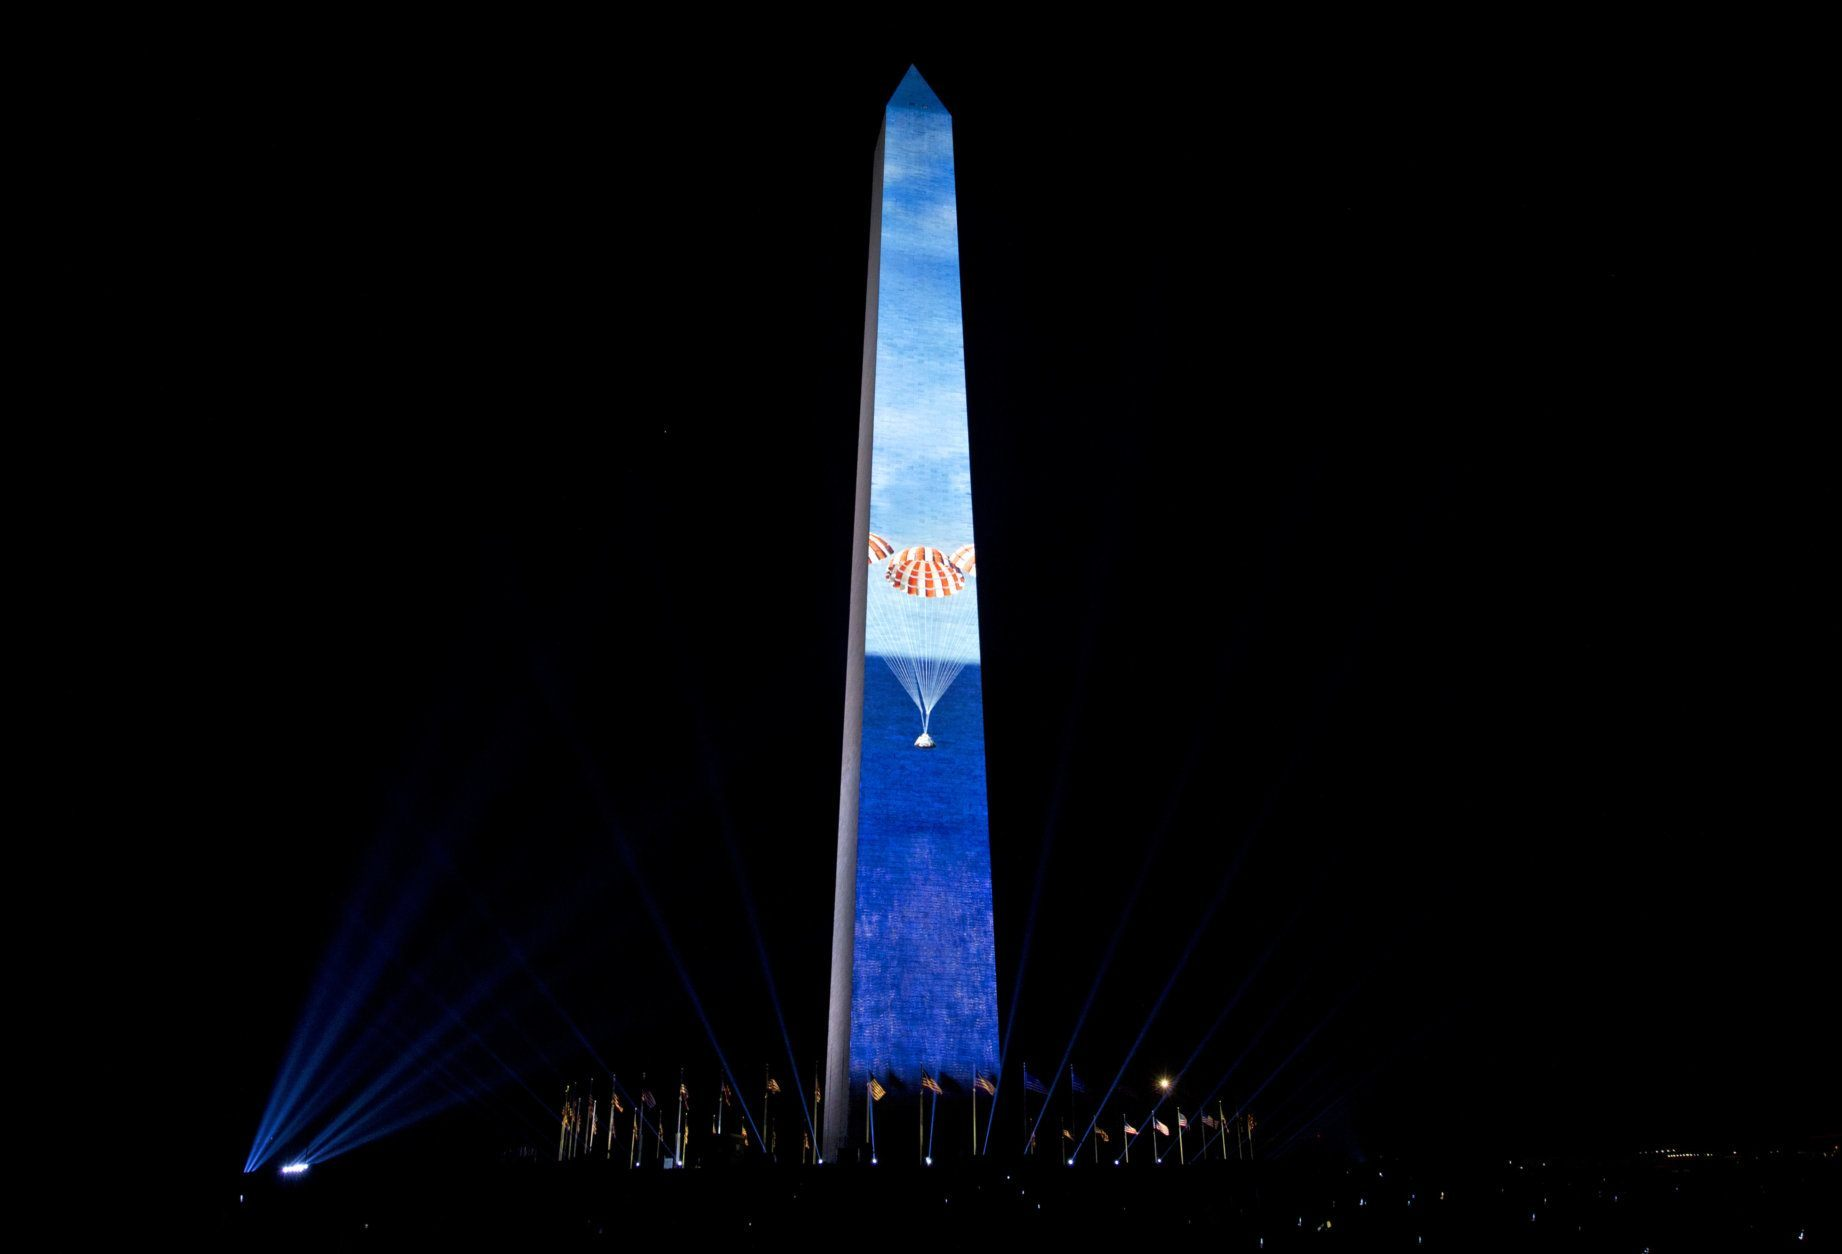 The Apollo 11 mission entering to earth landing with parachutes in the ocean, is projected on the Washington Monument, during the 50th anniversary of the Apollo moon landing festivities at the National Mall in Washington, Friday, July 19, 2019. (AP Photo/Jose Luis Magana)